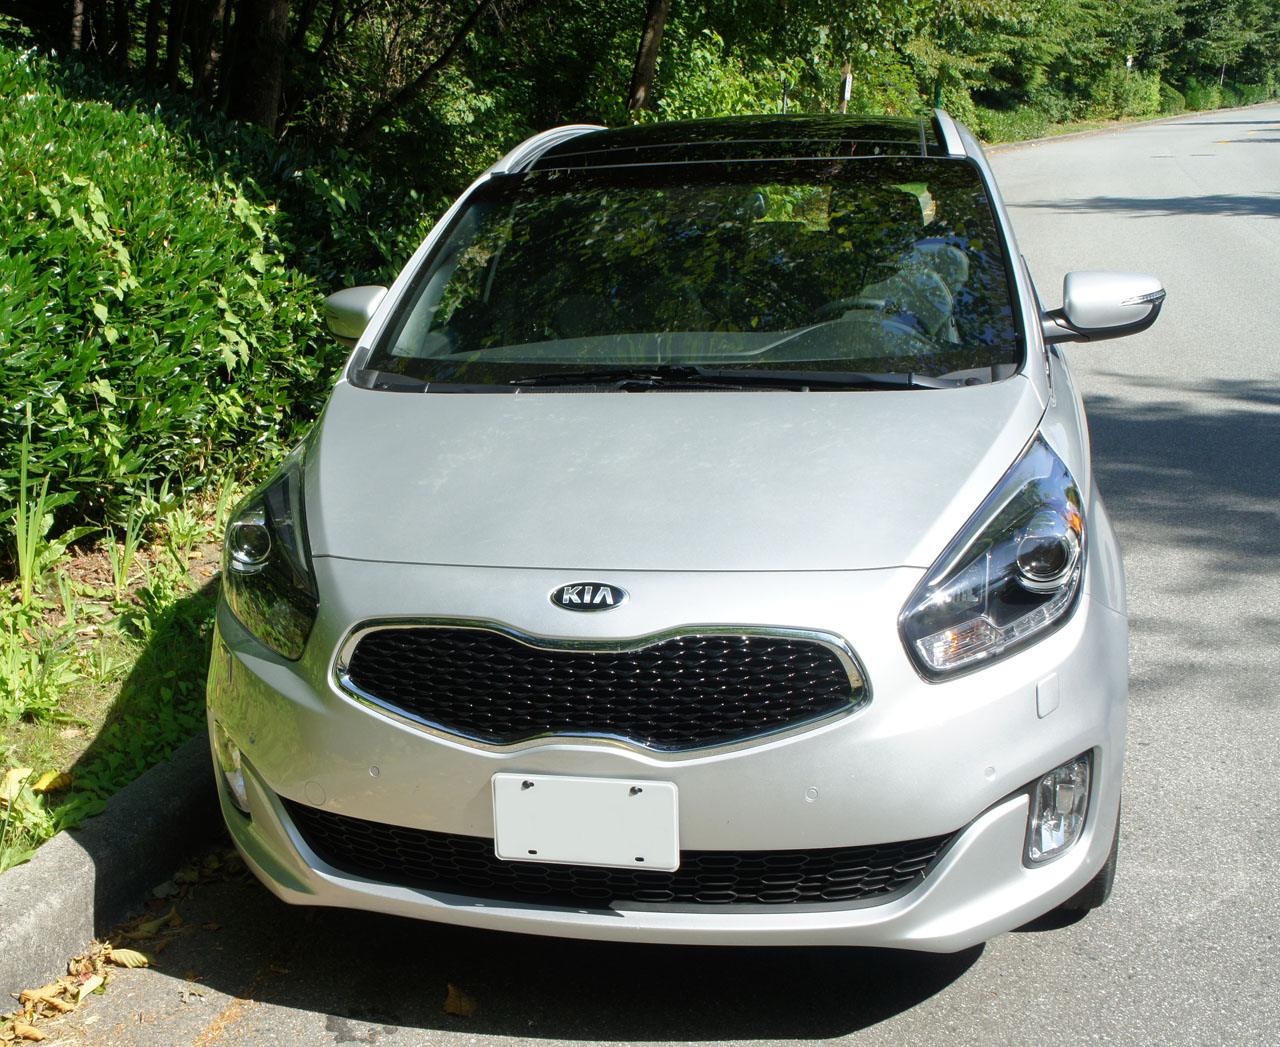 2014 Kia Rondo Ex Luxury Road Test Review Carcostcanada Engine Problems I Dont Think Can Use The Phrase Mini Minivan What Really Defines A Vehicle As If It Isnt Sliding Doors Or